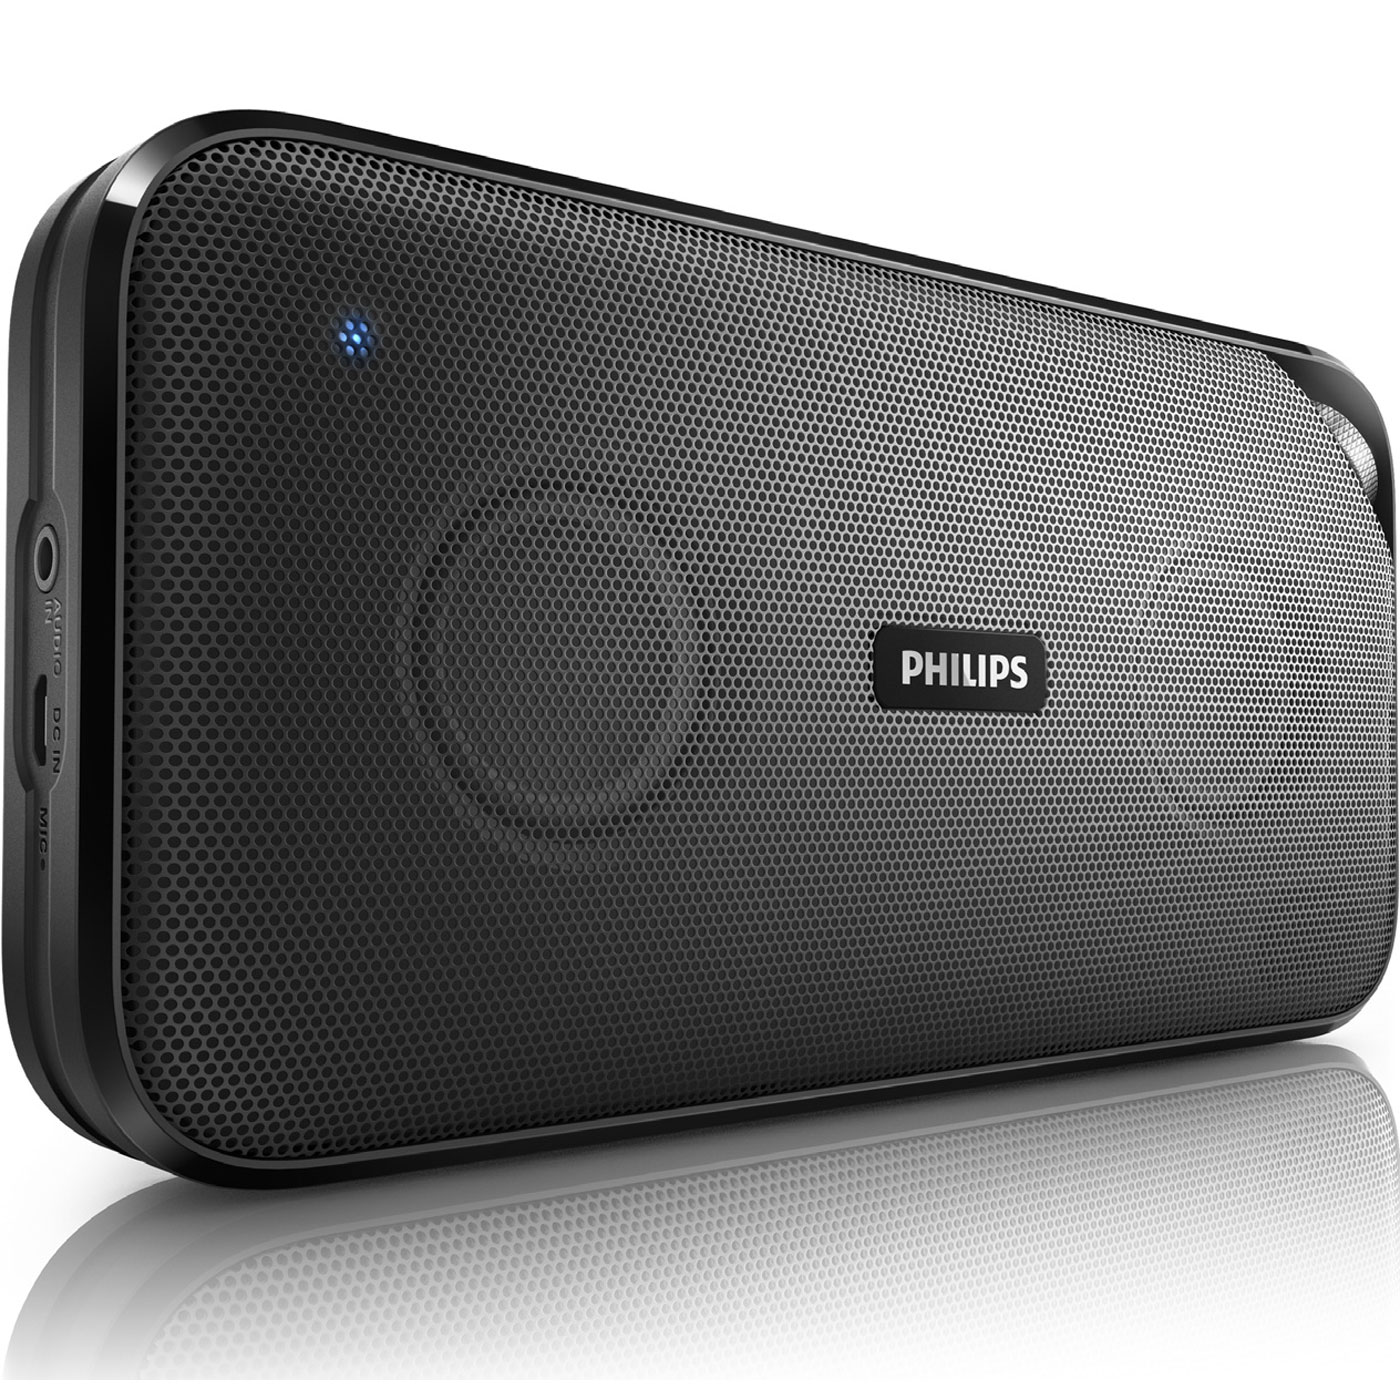 philips bt3500 noir dock enceinte bluetooth philips. Black Bedroom Furniture Sets. Home Design Ideas